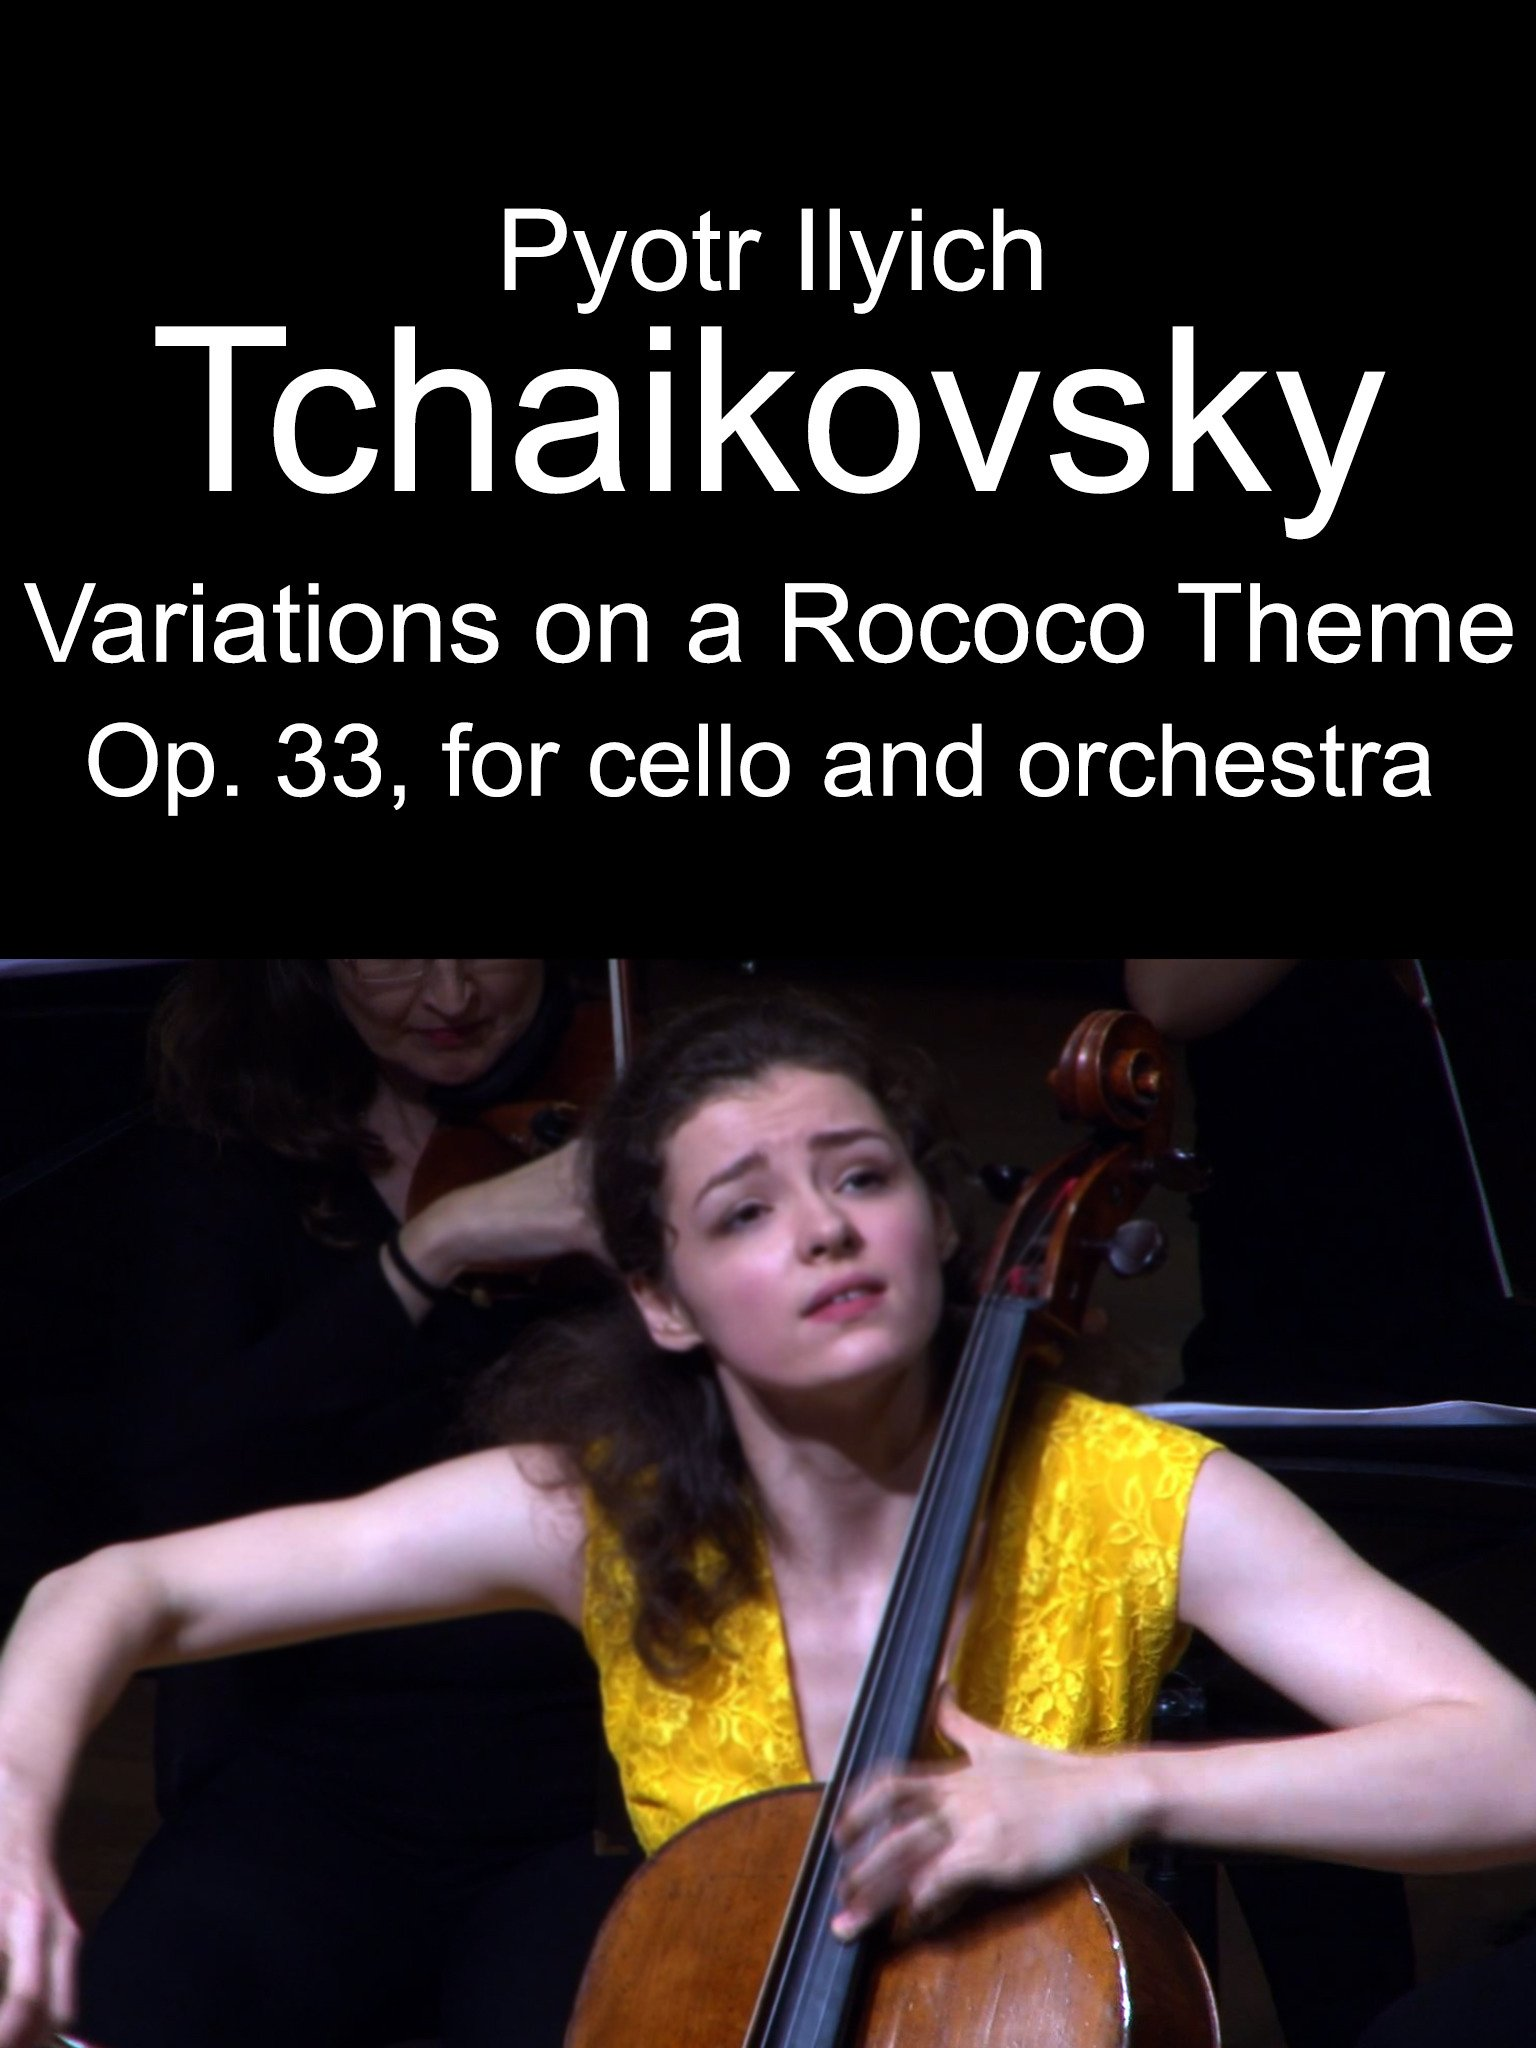 Tchaikovsky The Variations on a Rococo Theme on Amazon Prime Video UK